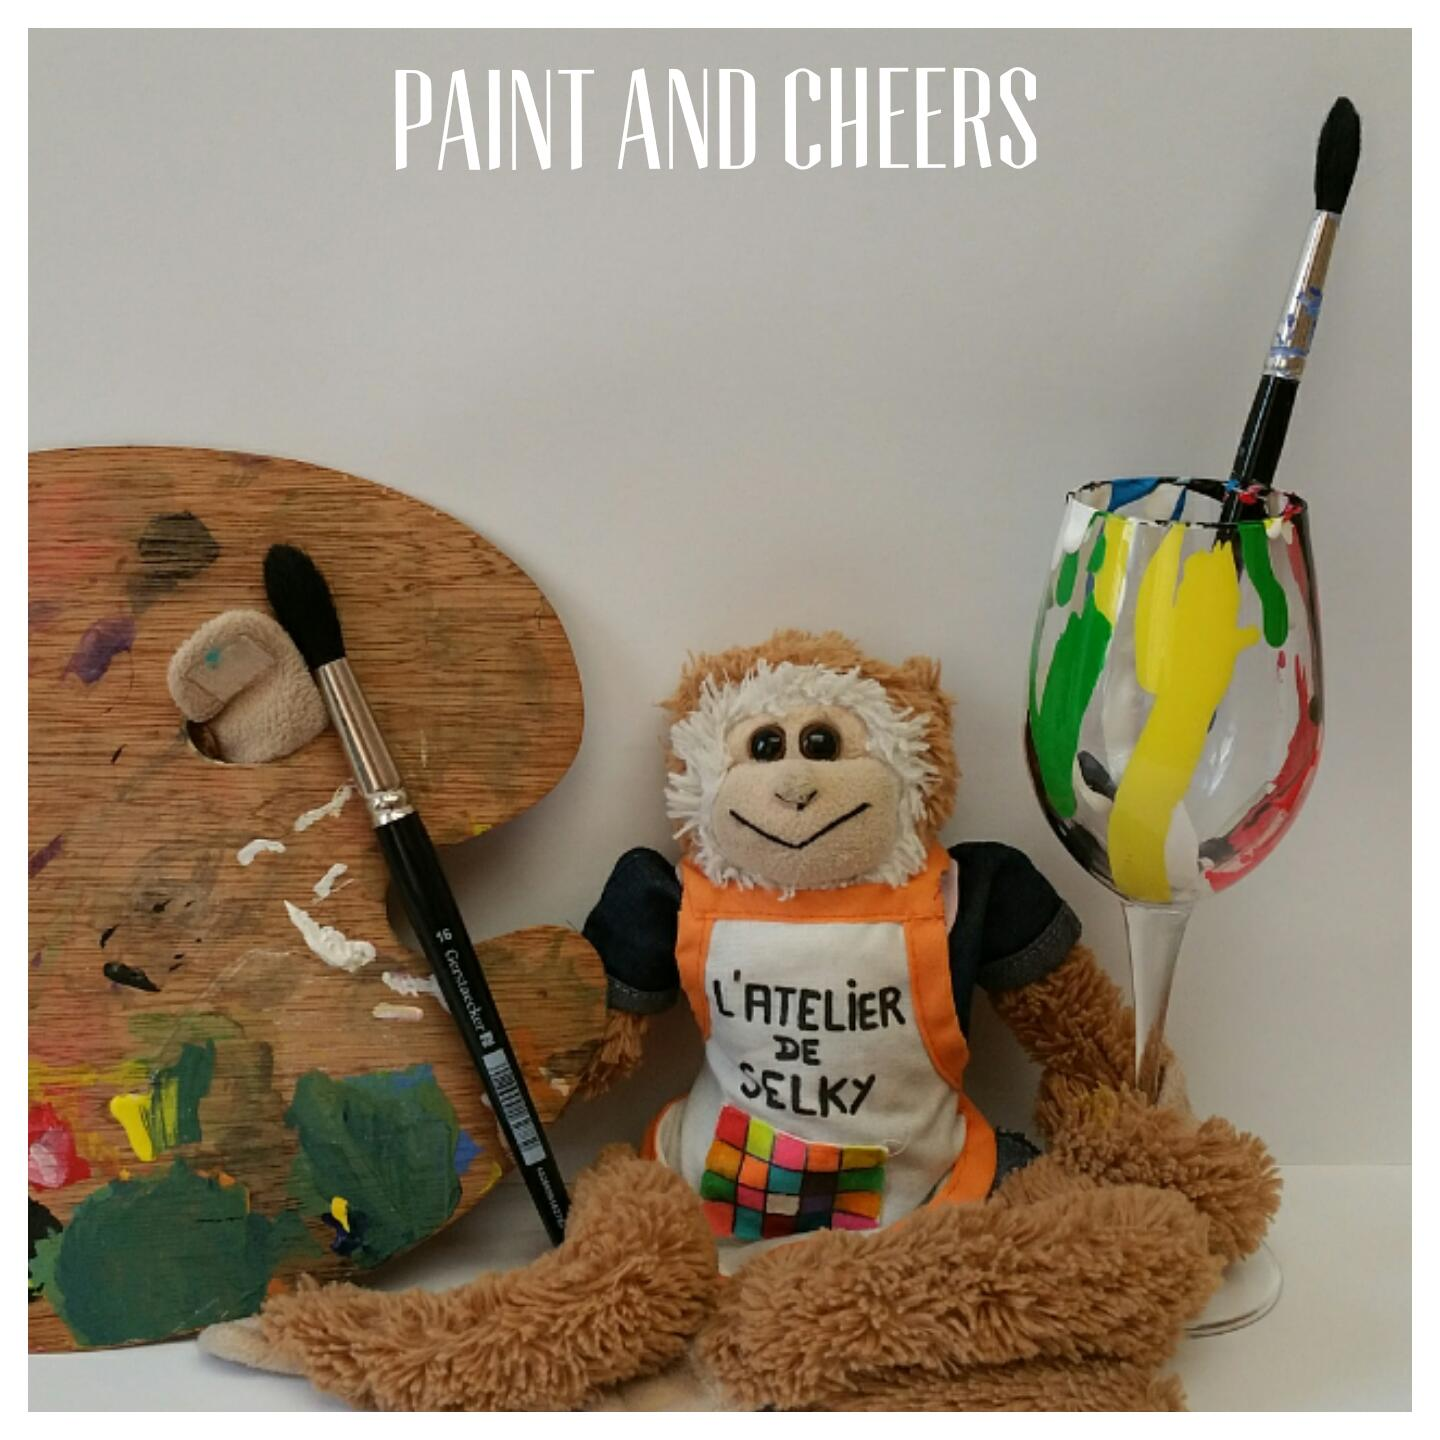 Paint and Cheers